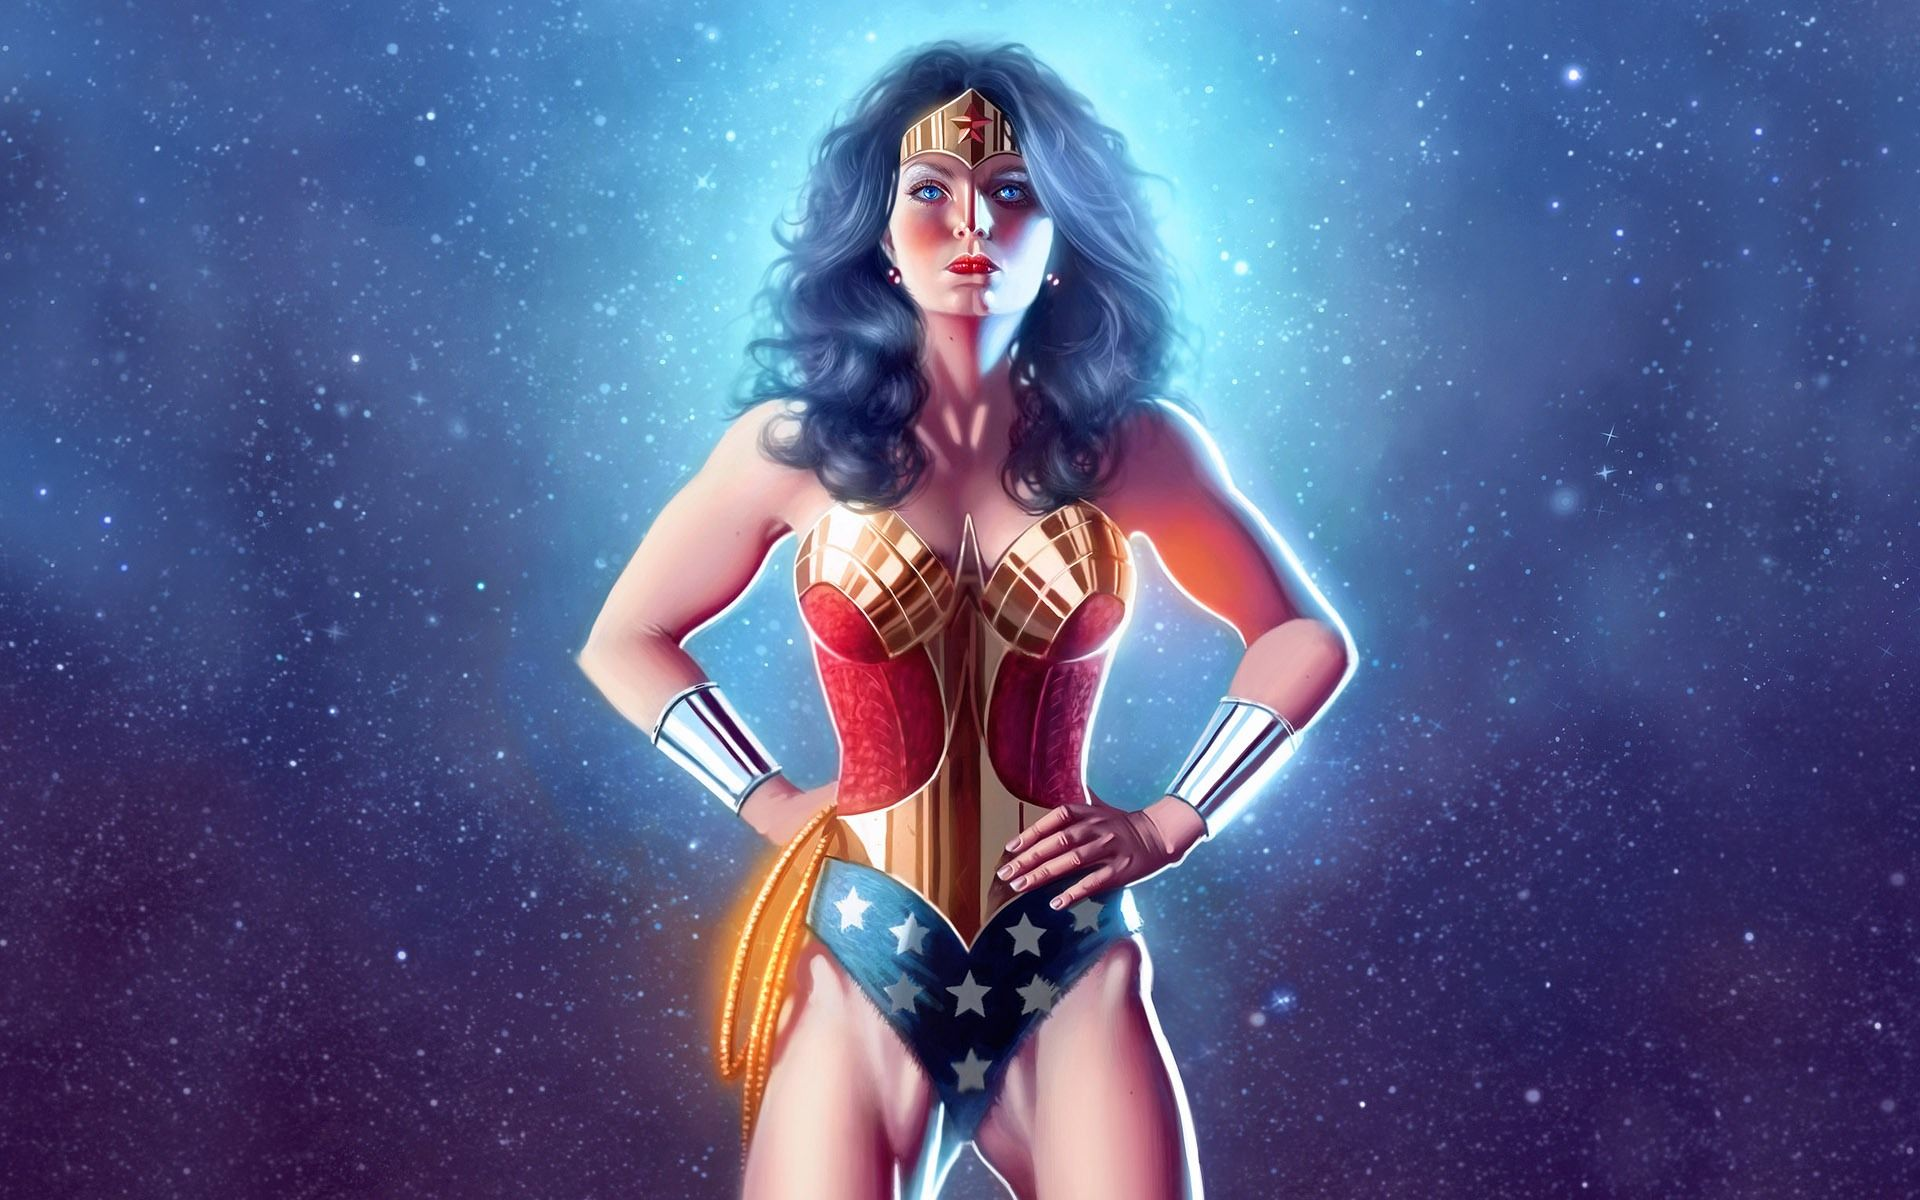 Wonder woman the return of wonder woman-1272